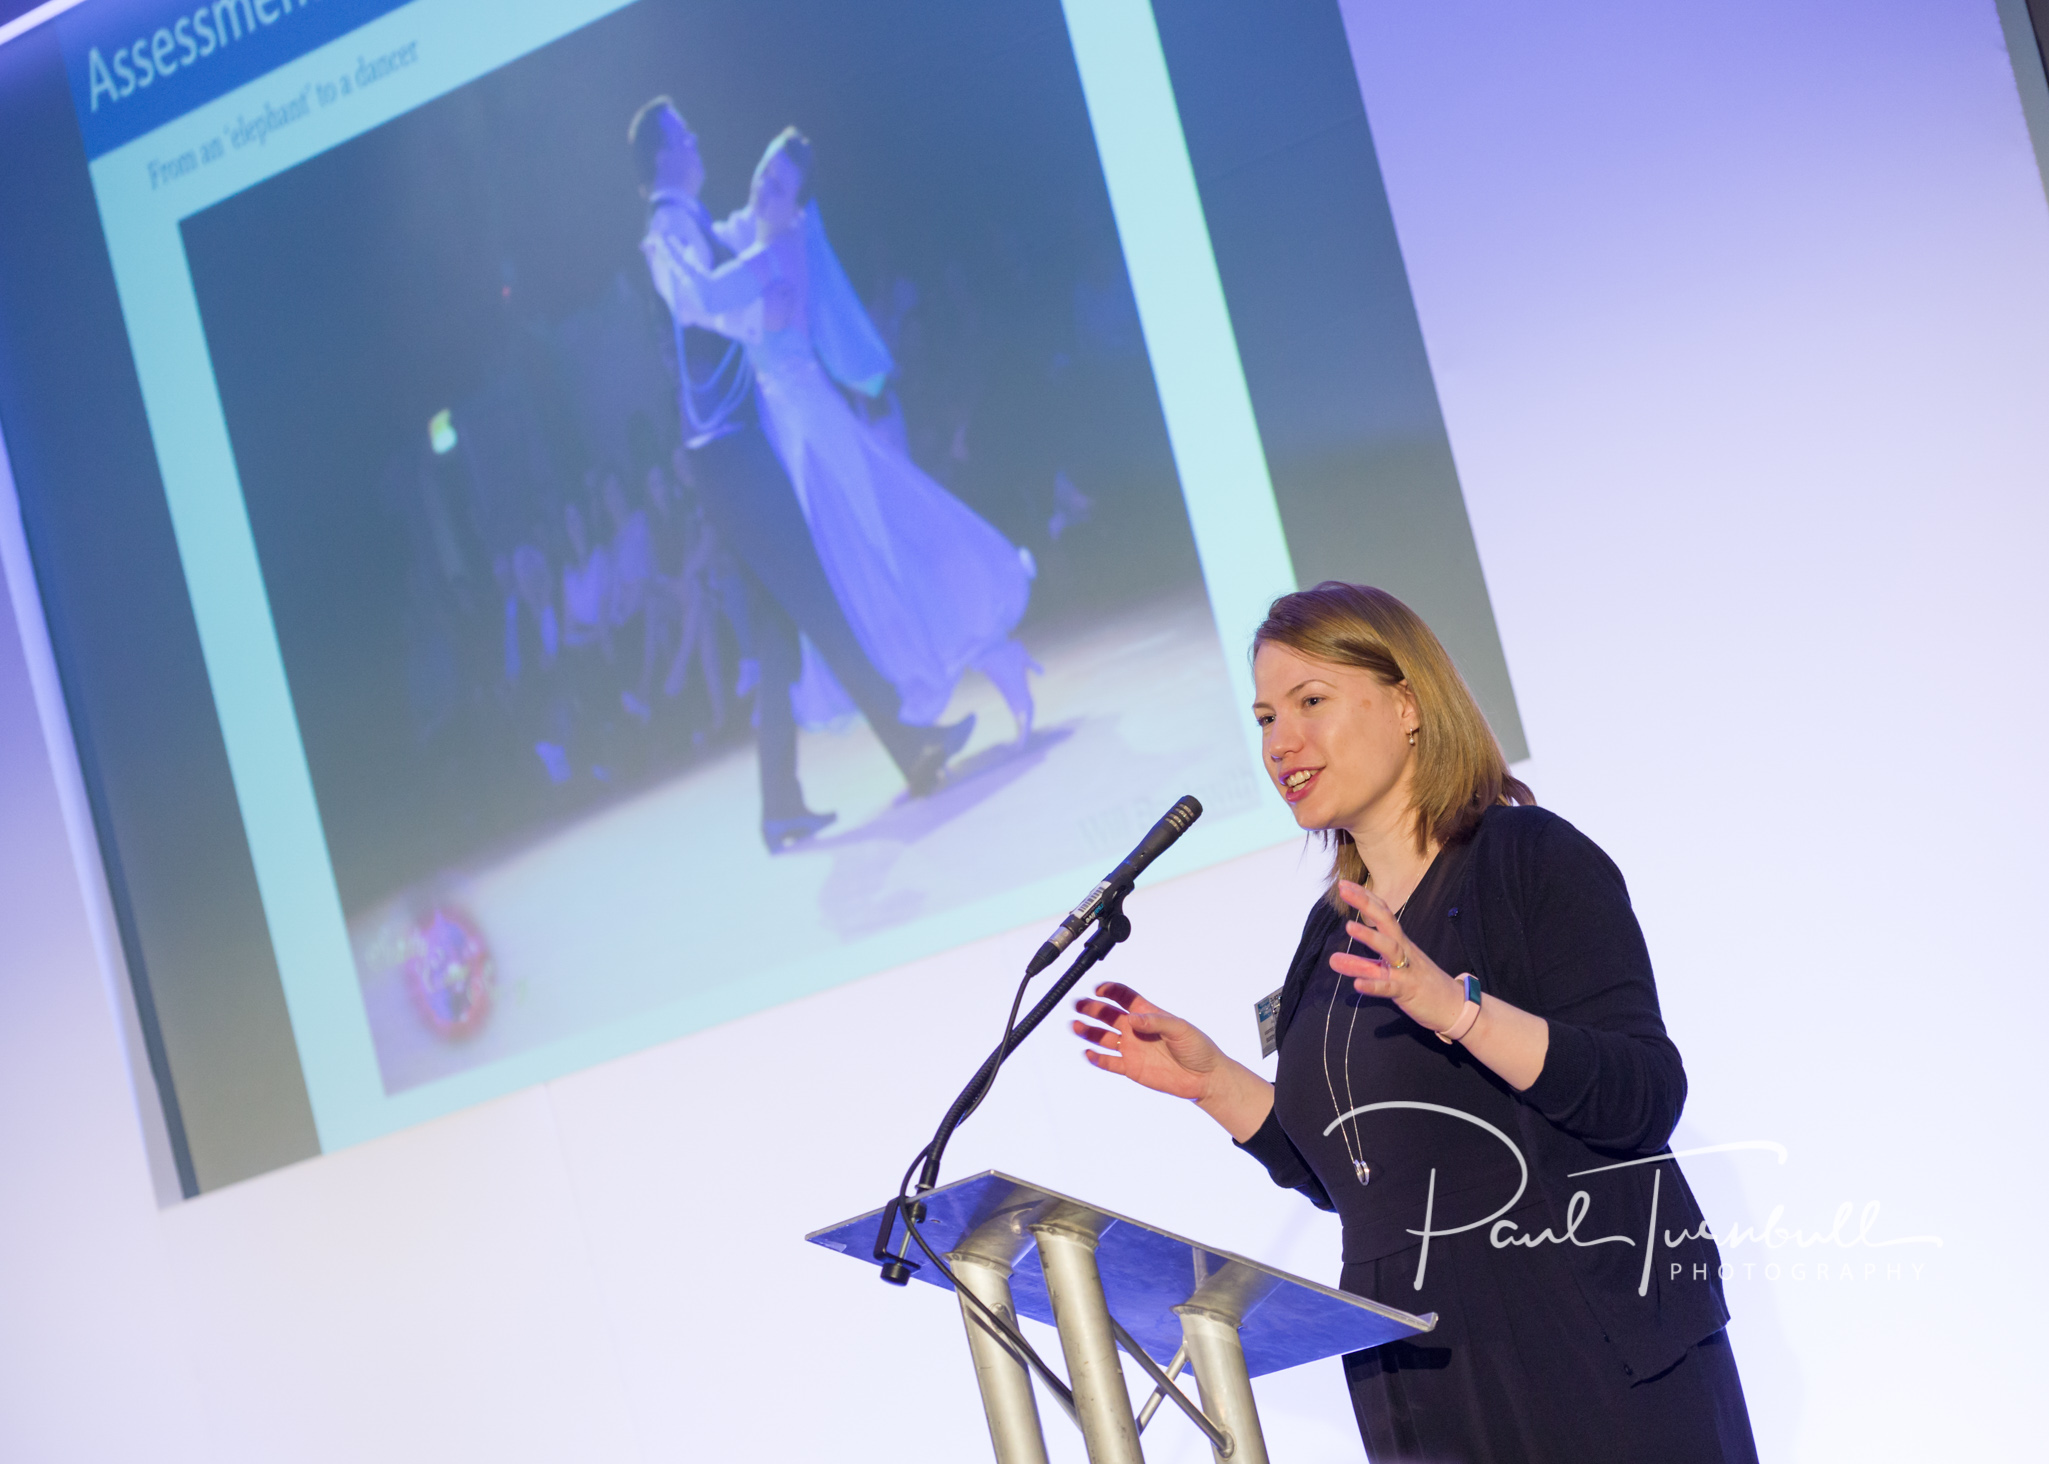 conference-event-photographer-queens-hotel-leeds-yorkshire-046.jpg